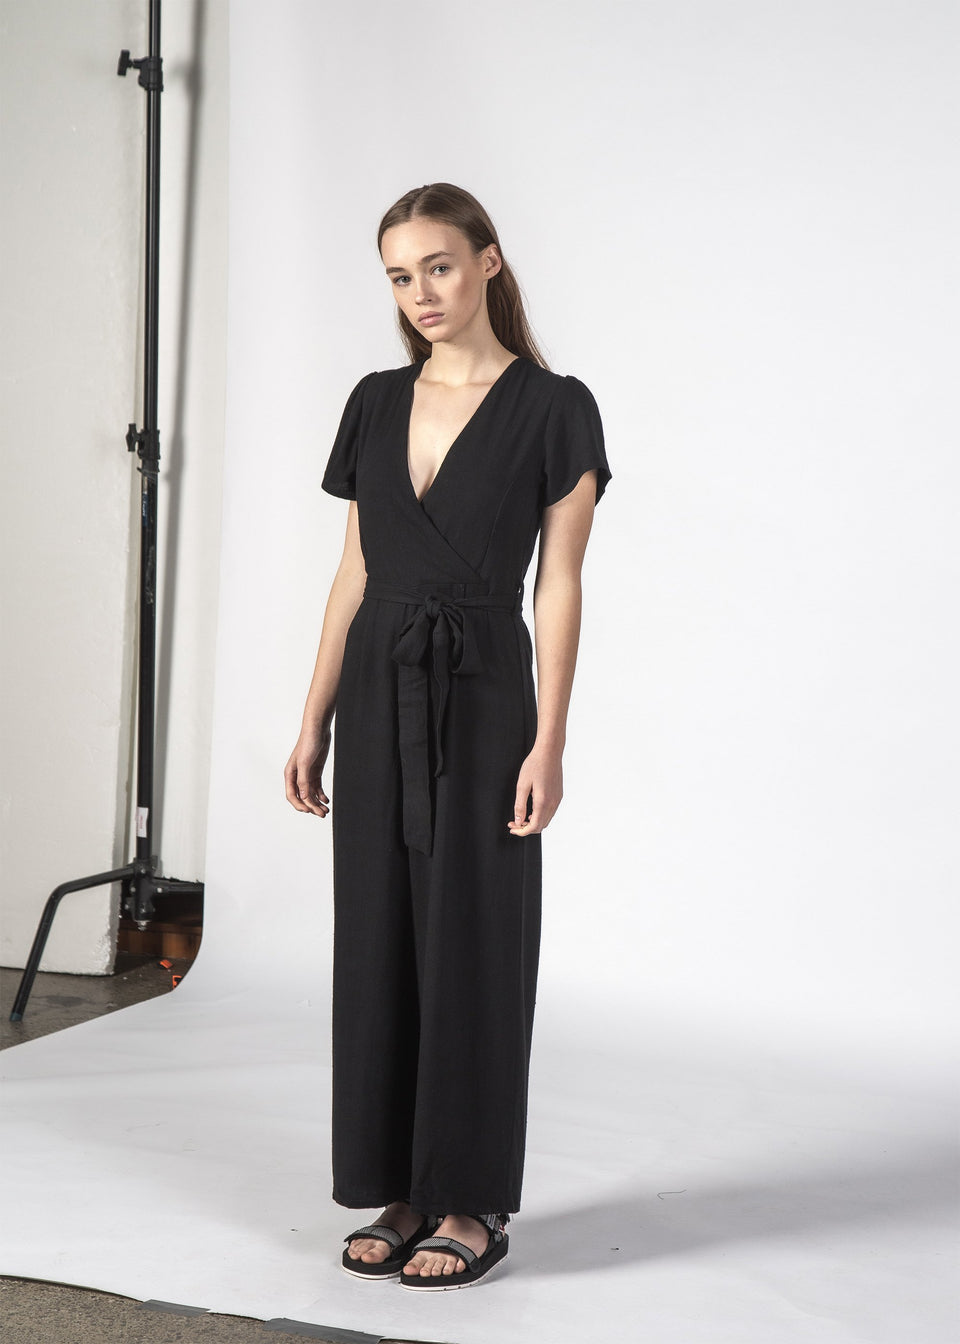 Thing Thing Luca Linen Jumpsuit Black - Stencil